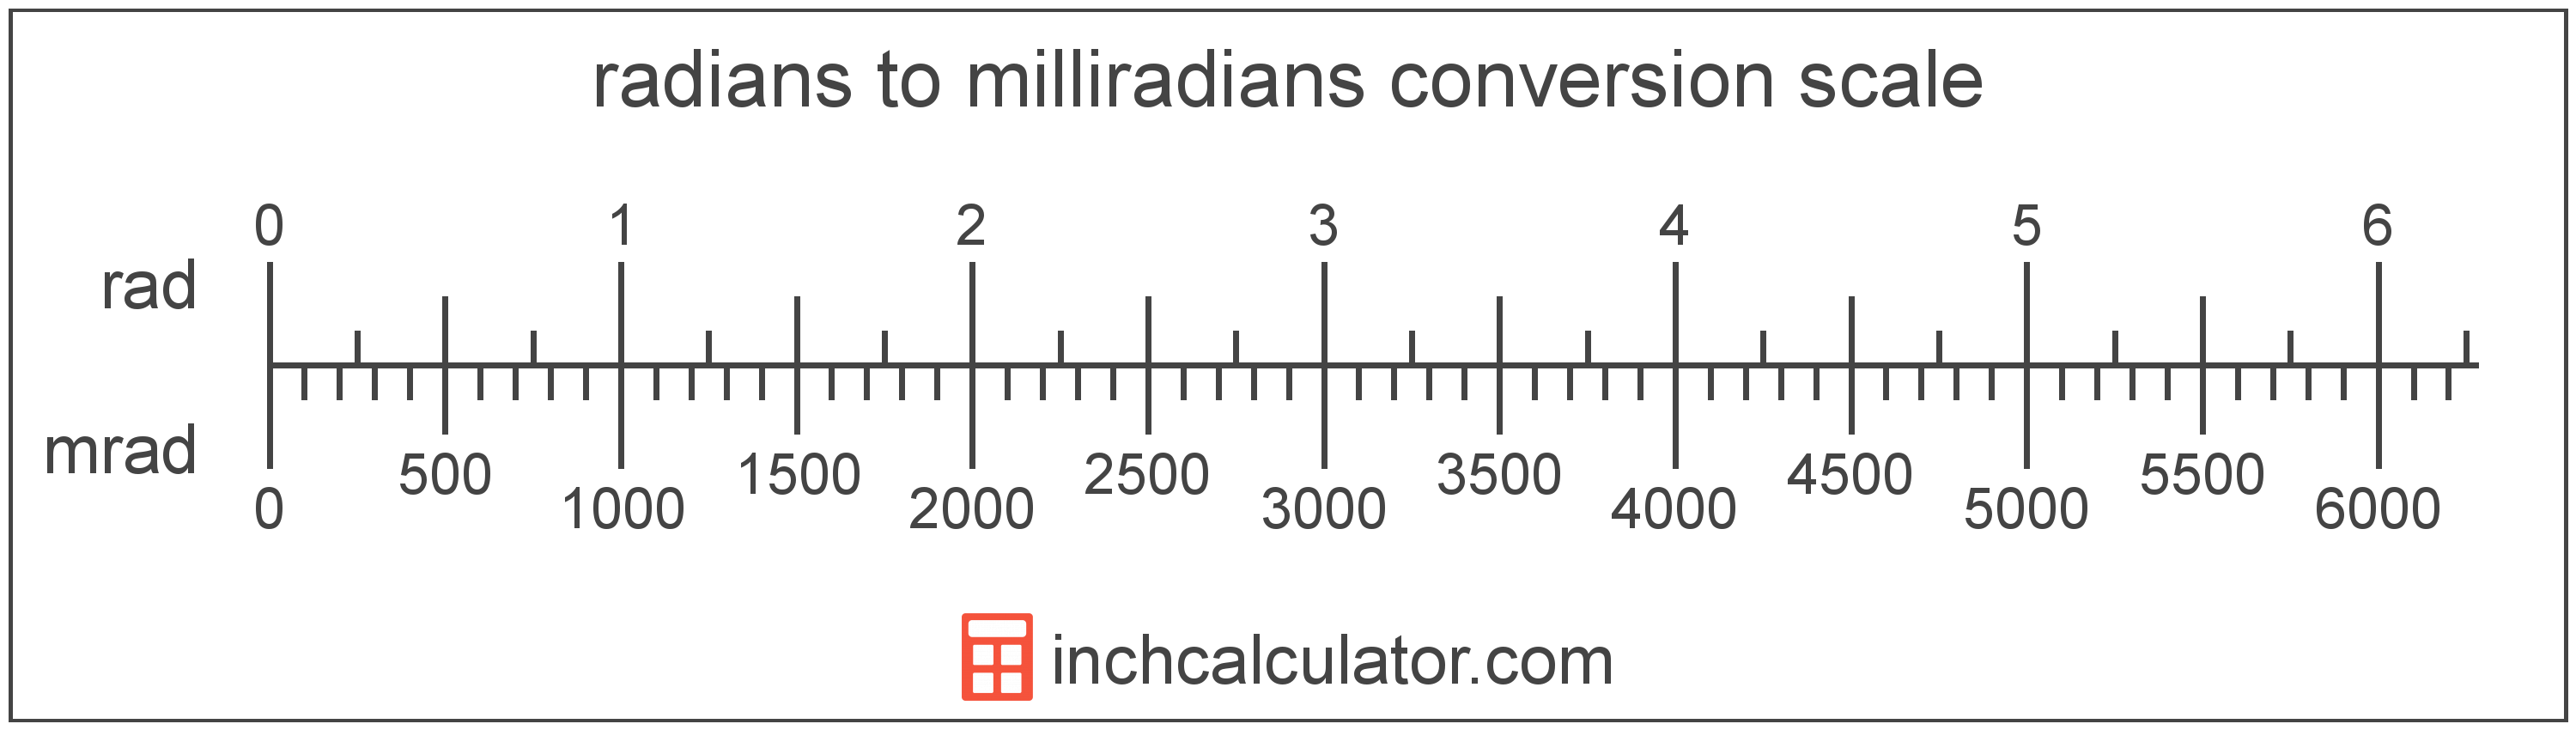 conversion scale showing radians and equivalent milliradians angle values